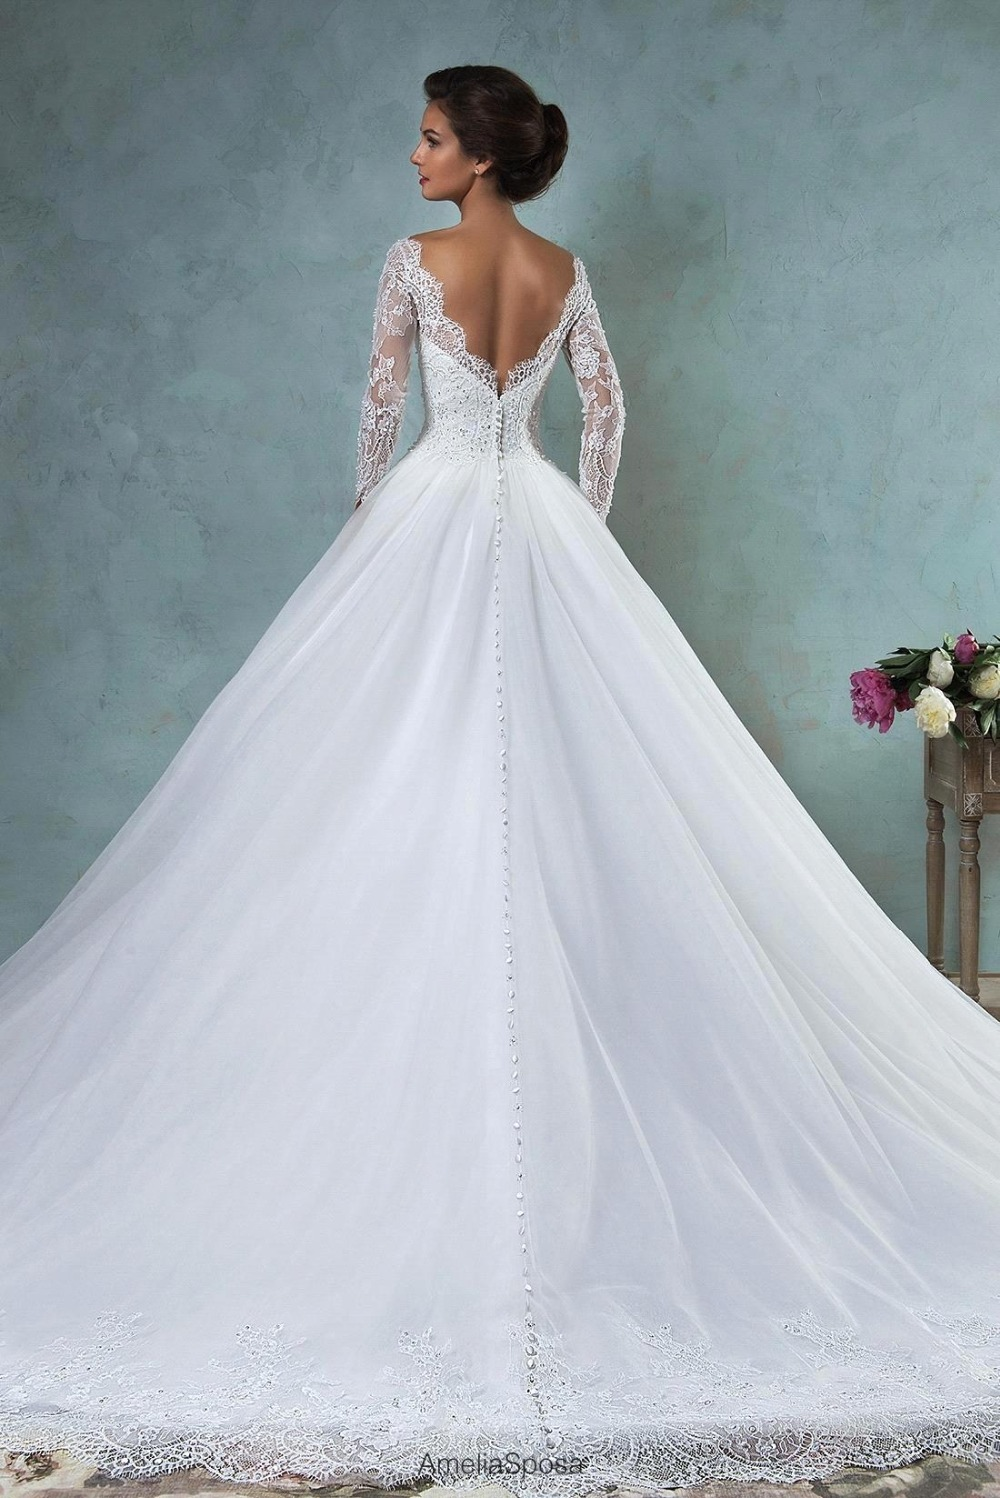 Fine Princess Wedding Gowns With Sleeves Pictures Inspiration ...